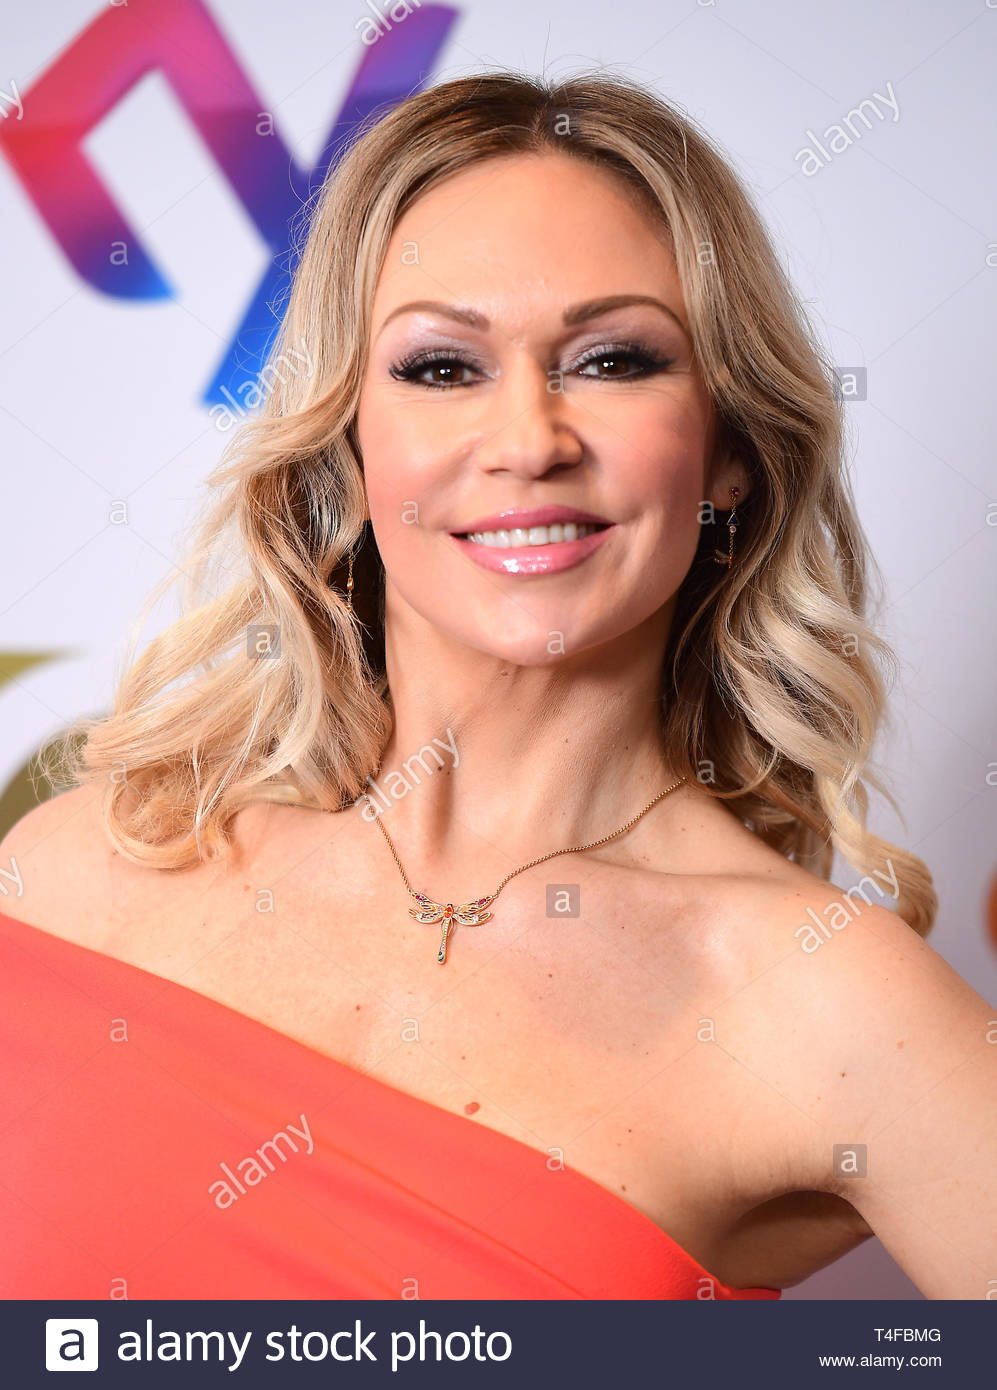 File photo dated 12/03/19 of Kristina Rihanoff, who has said Nicole Scherzinger would be a good replacement for Dame Darcey Bussell on the Strictly Come Dancing judging panel. - Stock Image